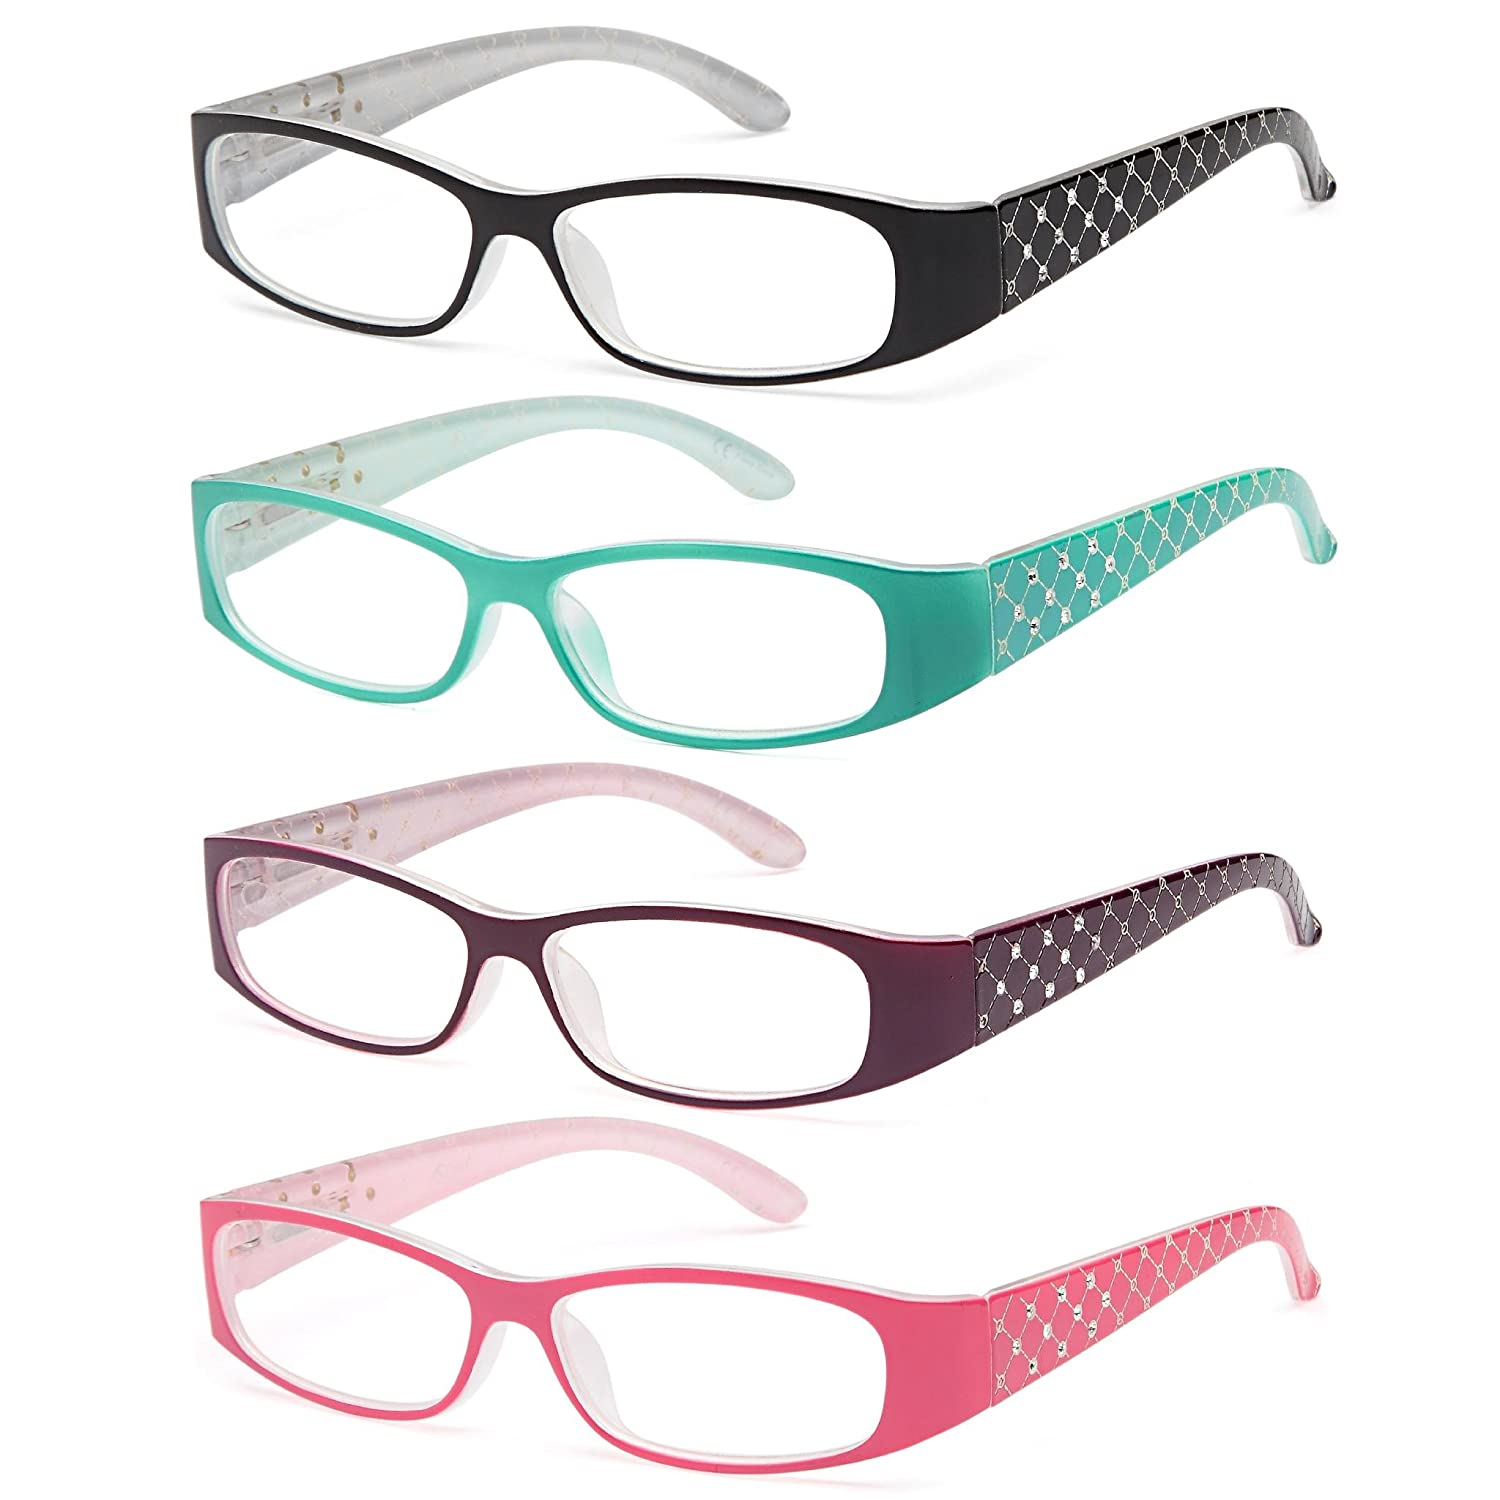 ALTEC VISION Pack of 4 Pattern Color Frame Readers Spring Hinge Reading Glasses for Women - Choose Your Magnification AV